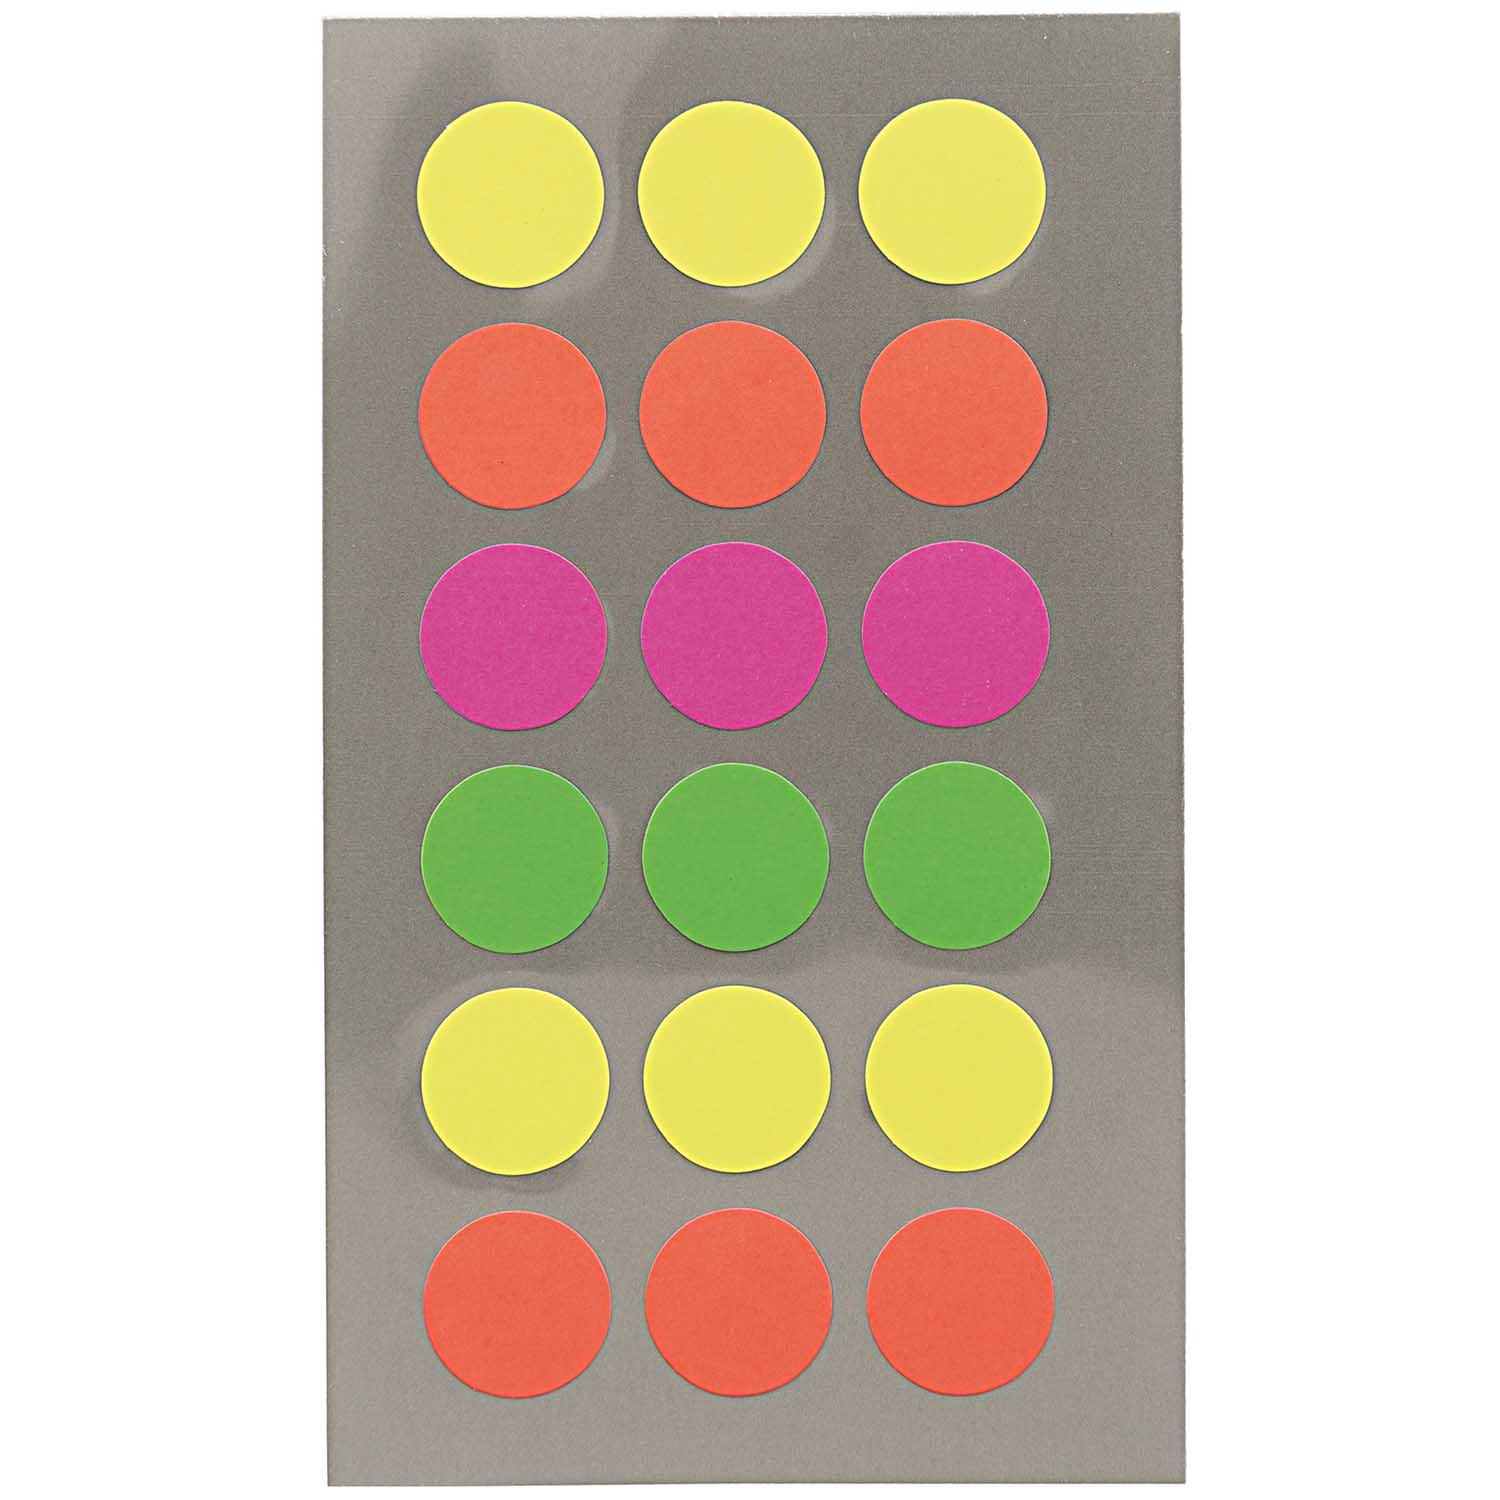 Rico NAY OFFICE STICKER, NEON DOTS 15MM